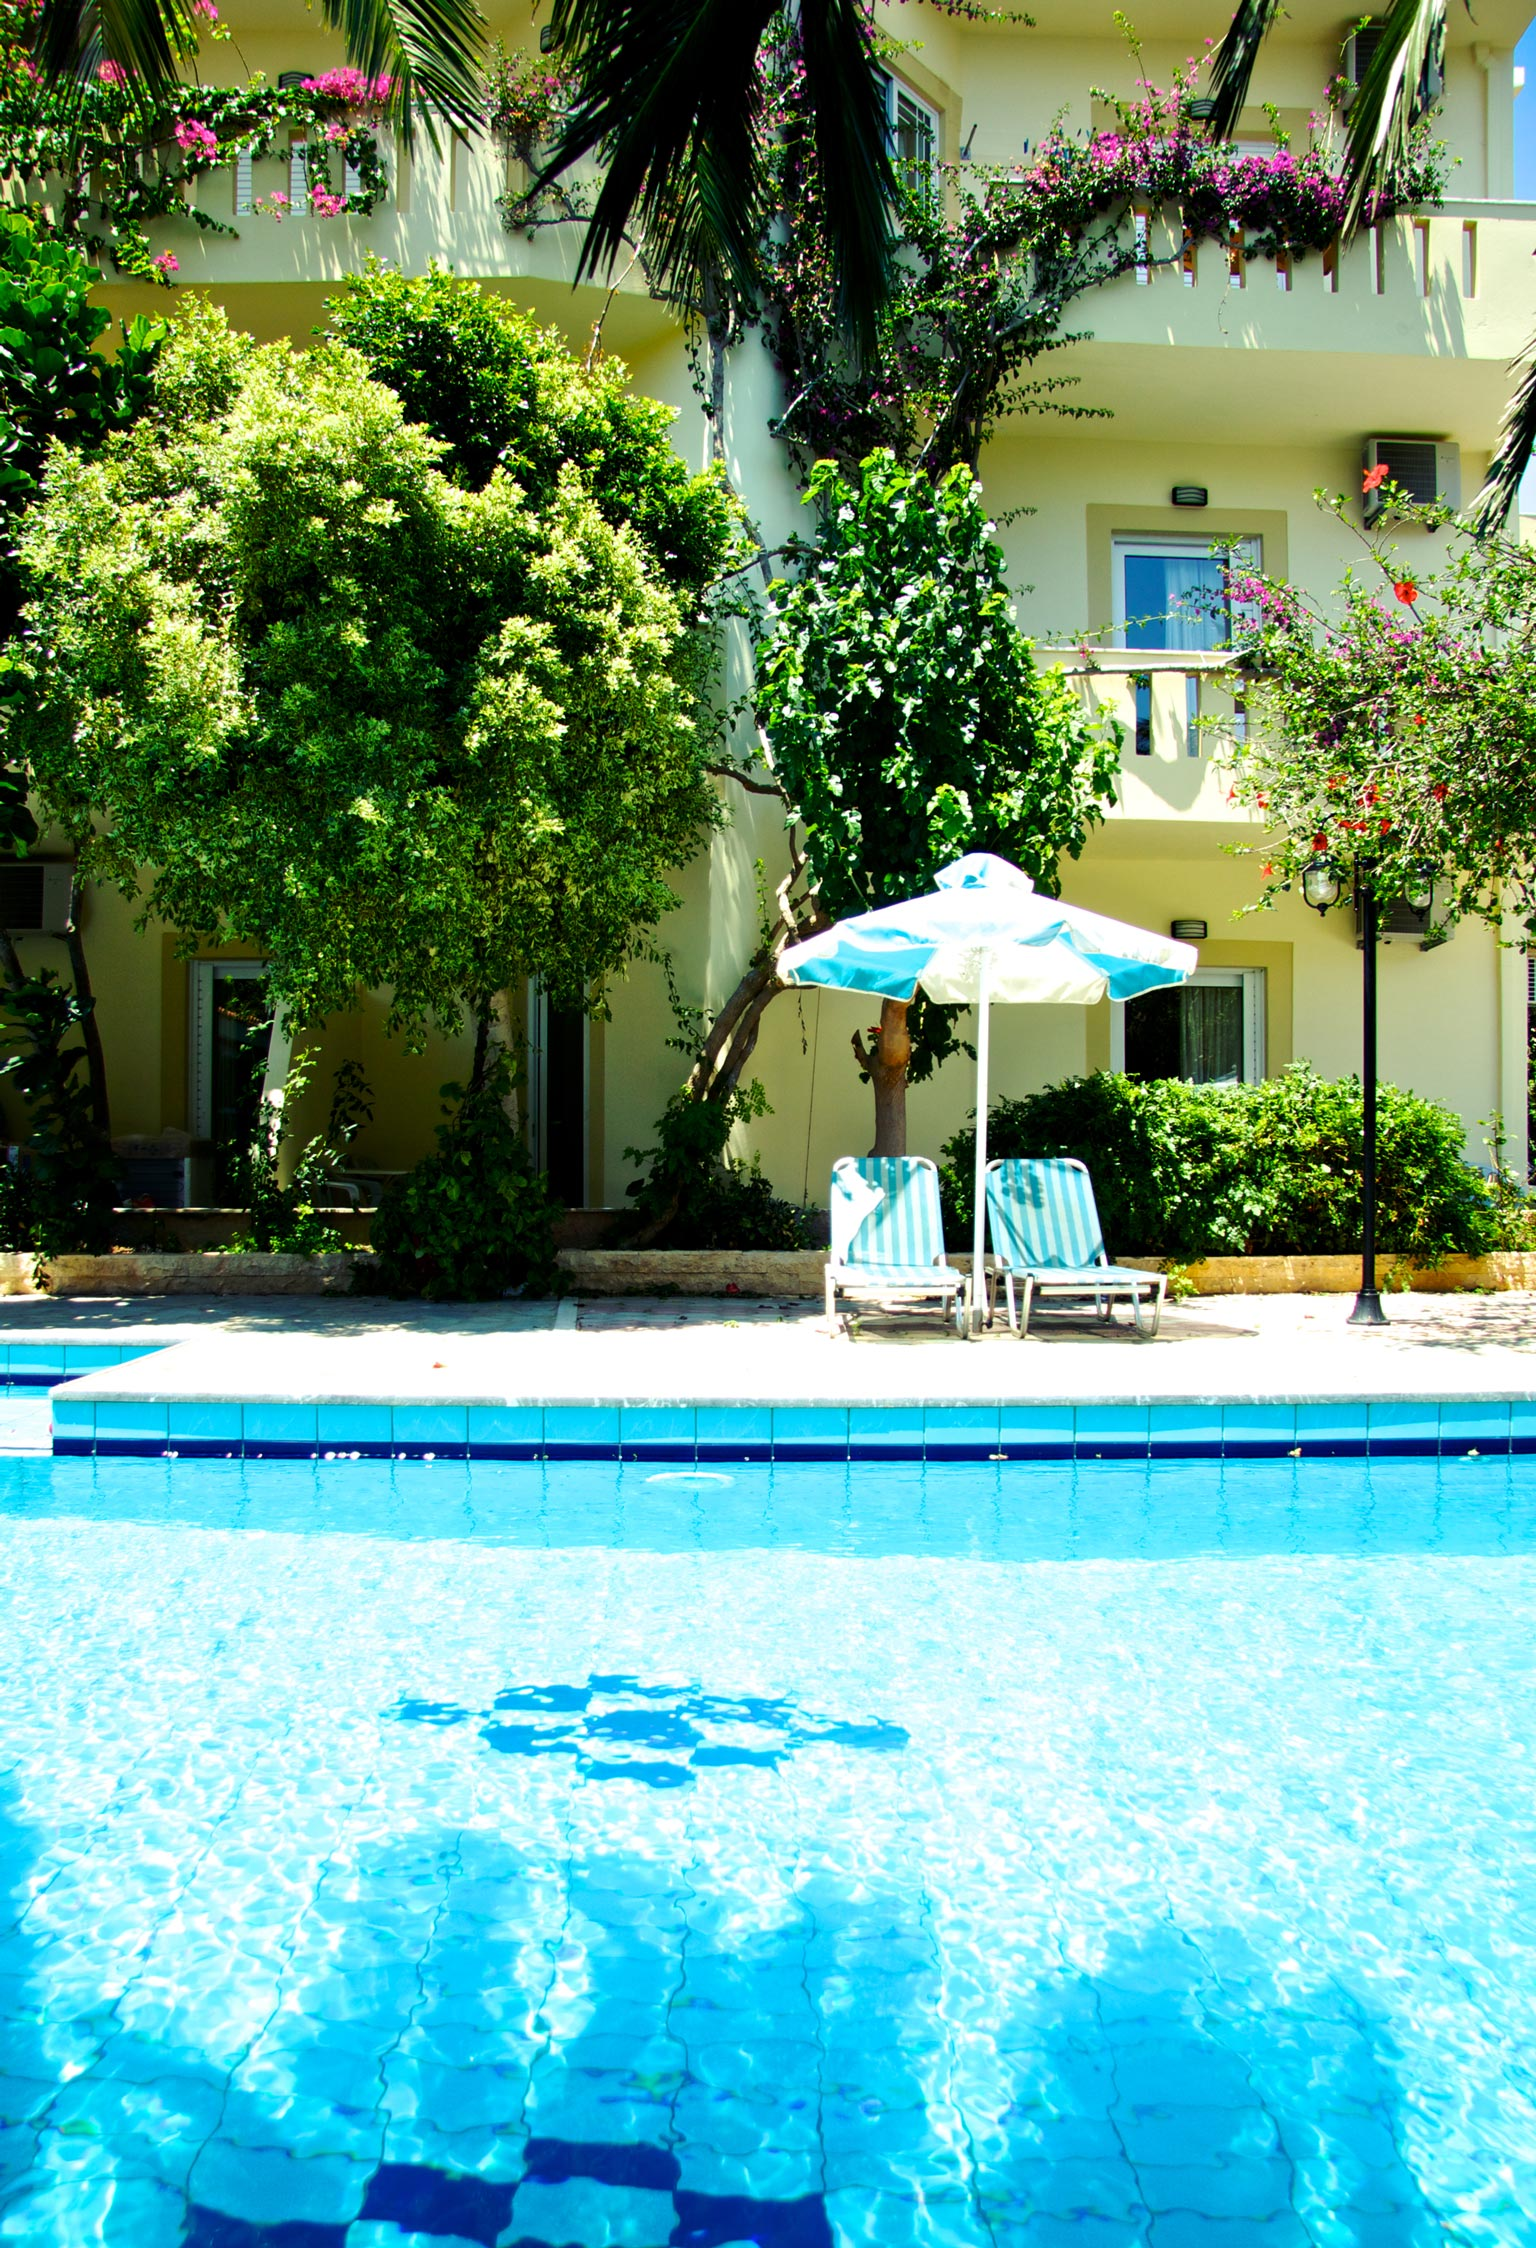 Sunrise Hotel & Apartments - Traditional friendly Cretan hospitality ...